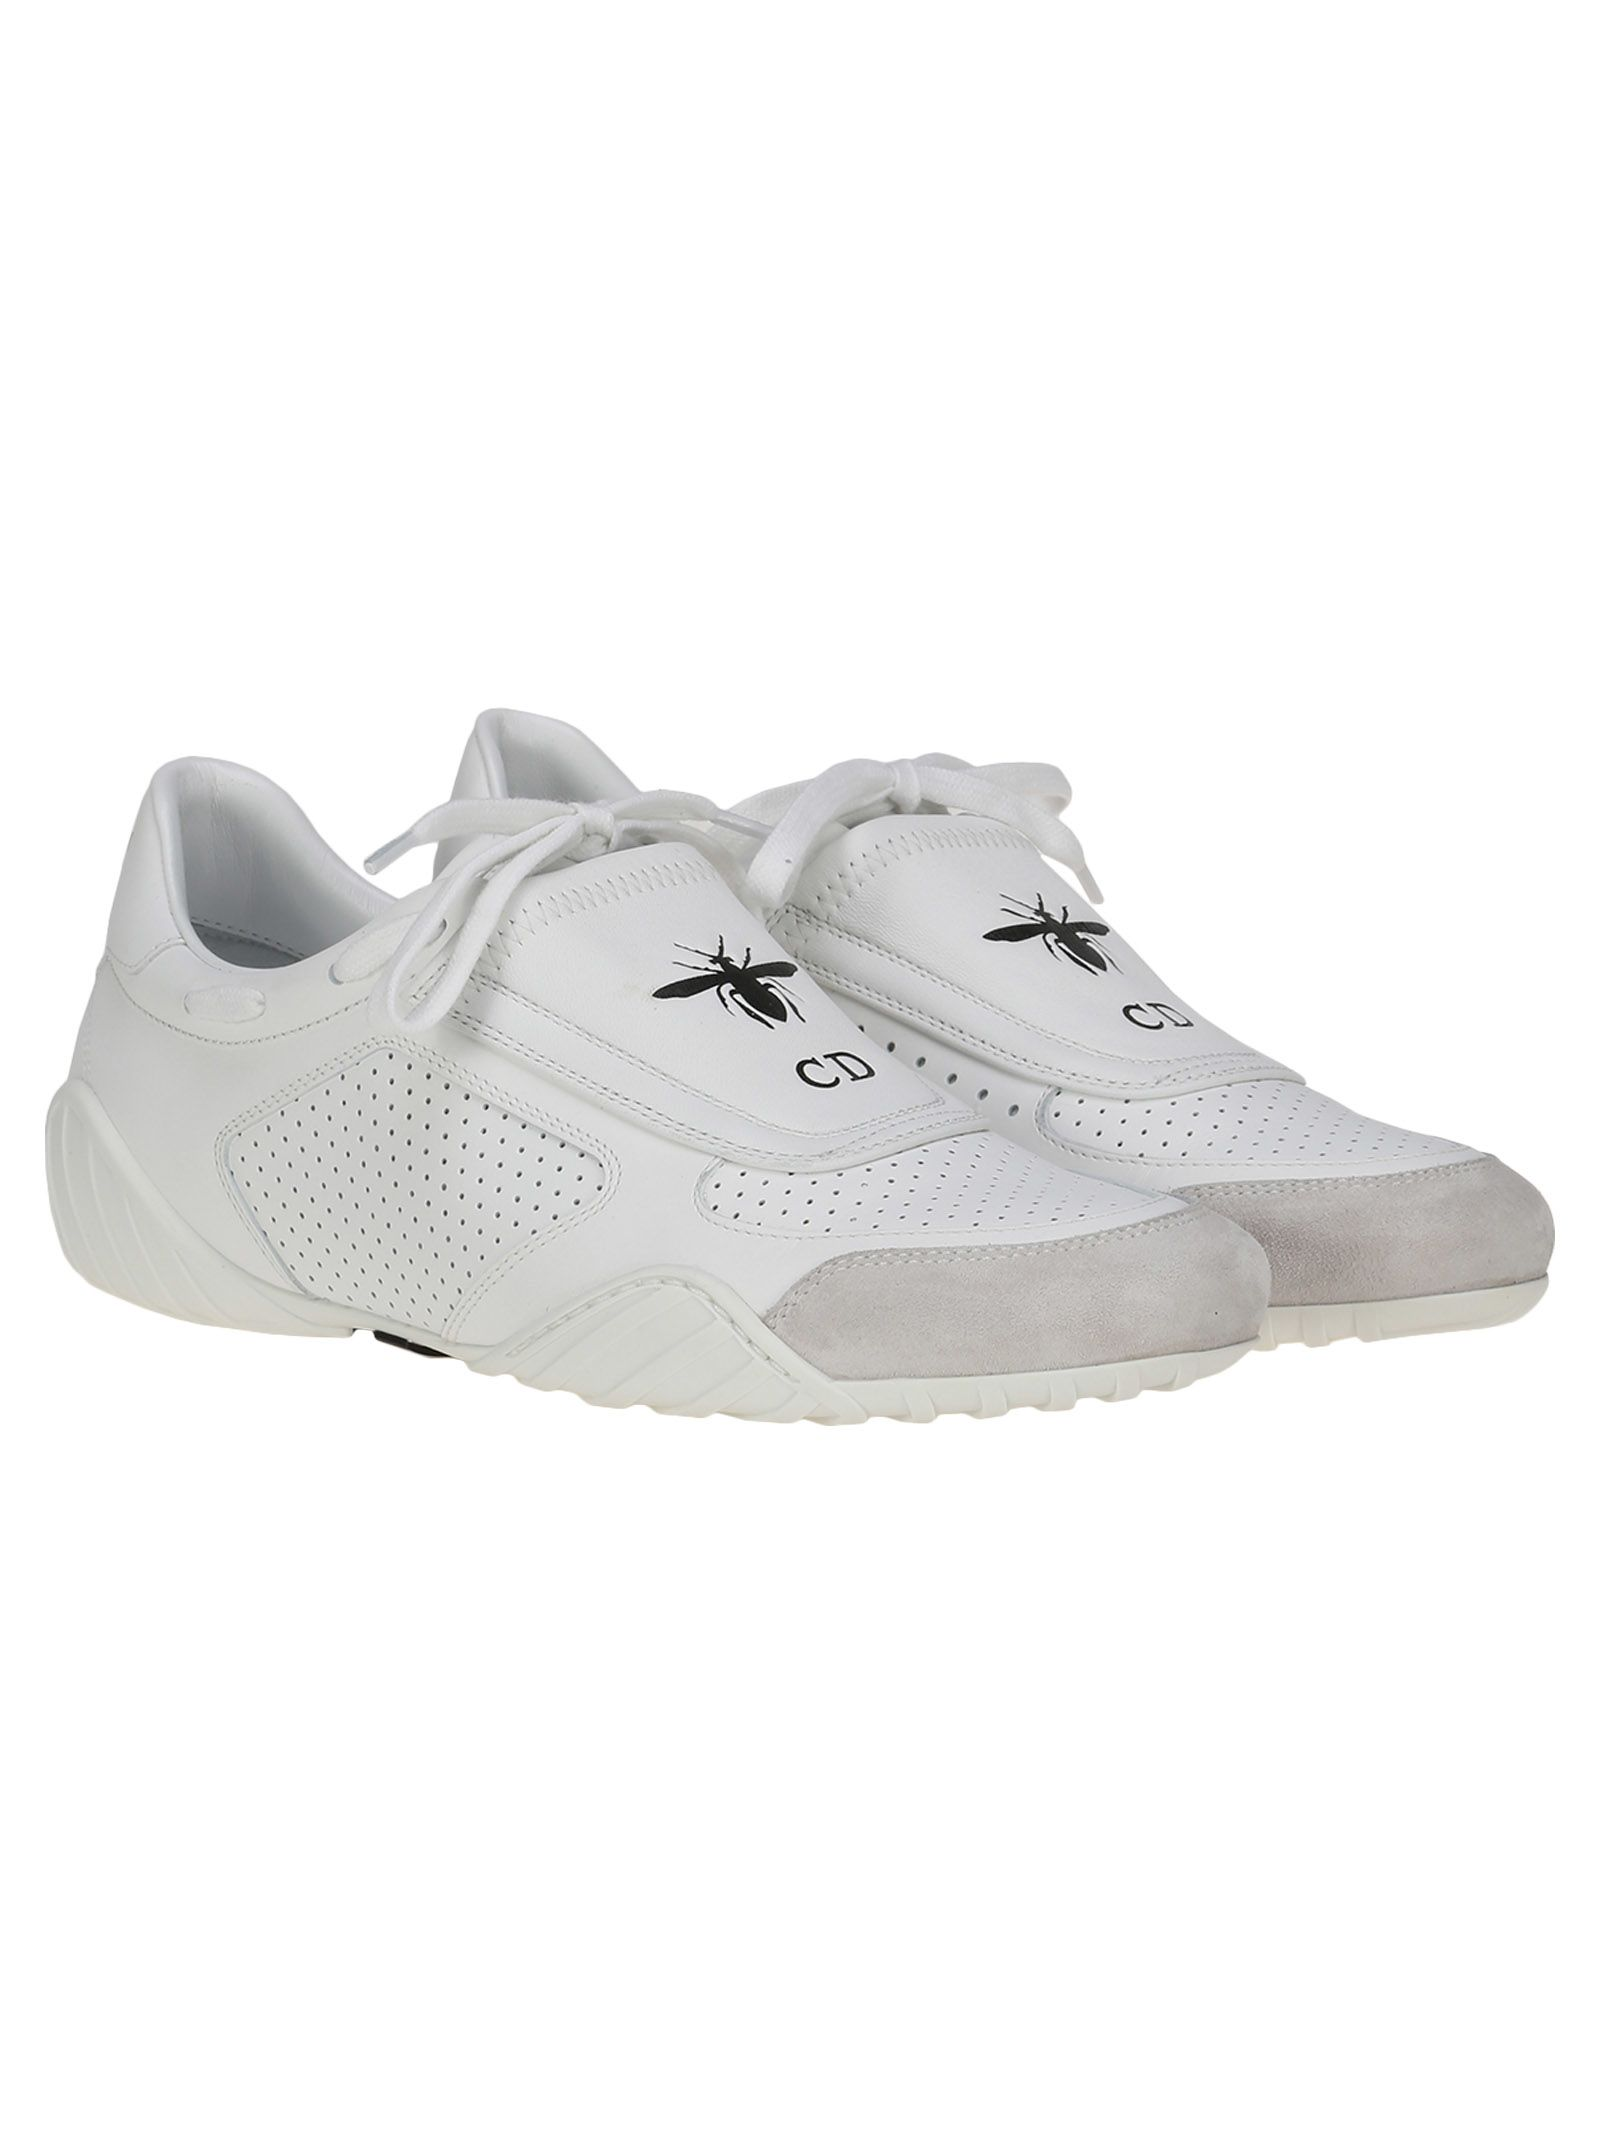 Christian Dior D-fence Sneakers